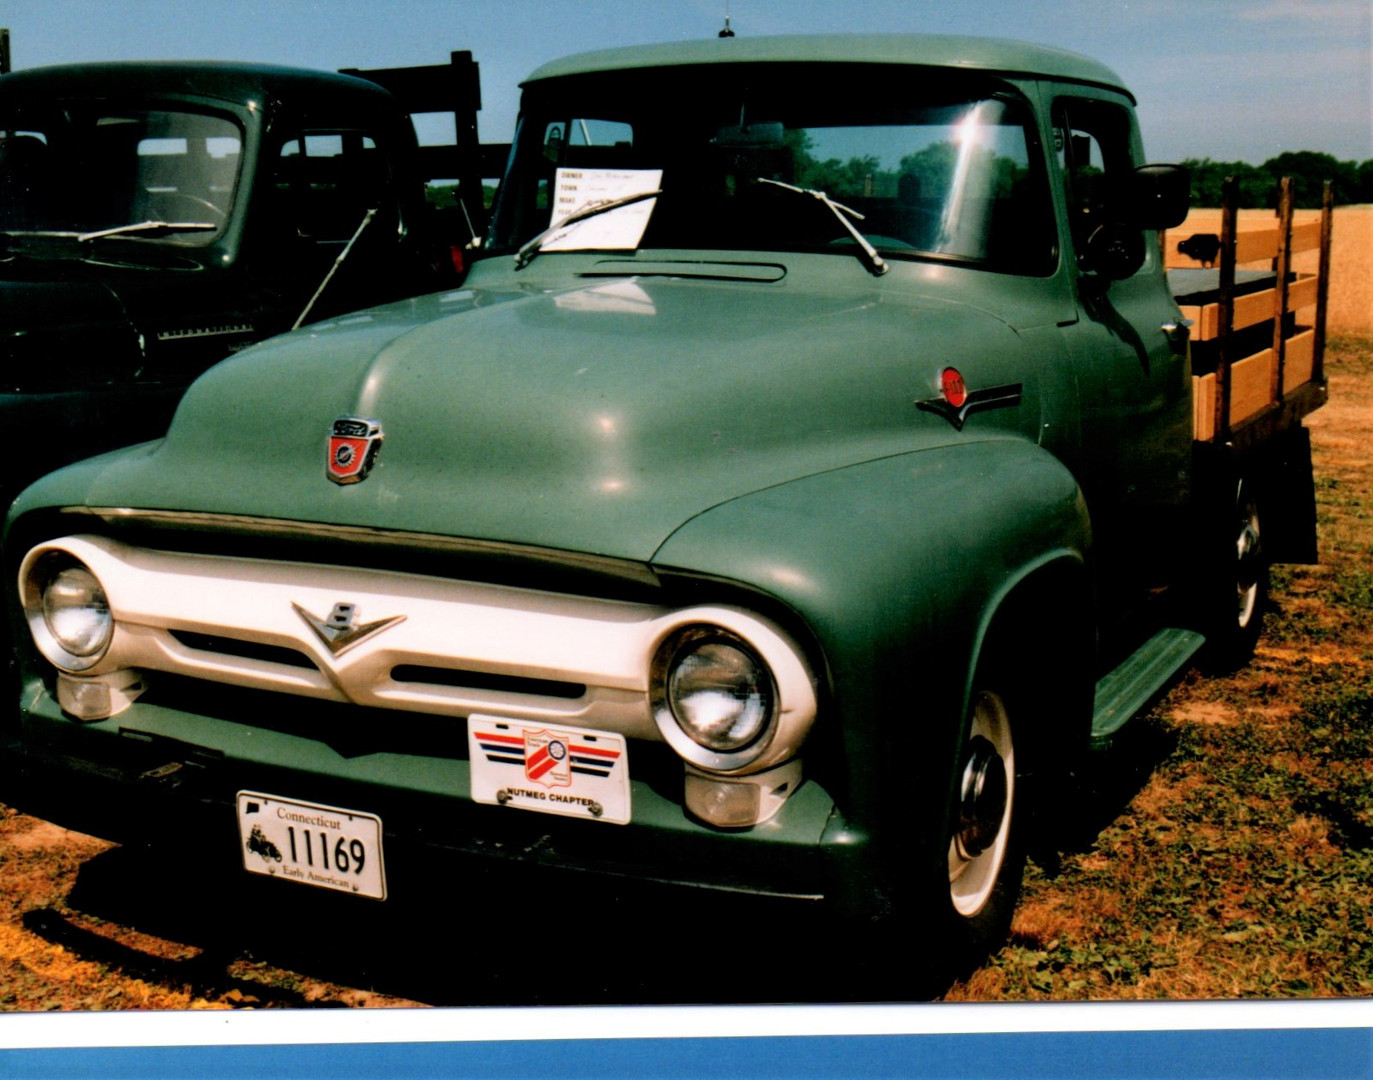 1956 Ford F-100 stake bed from Connecticut